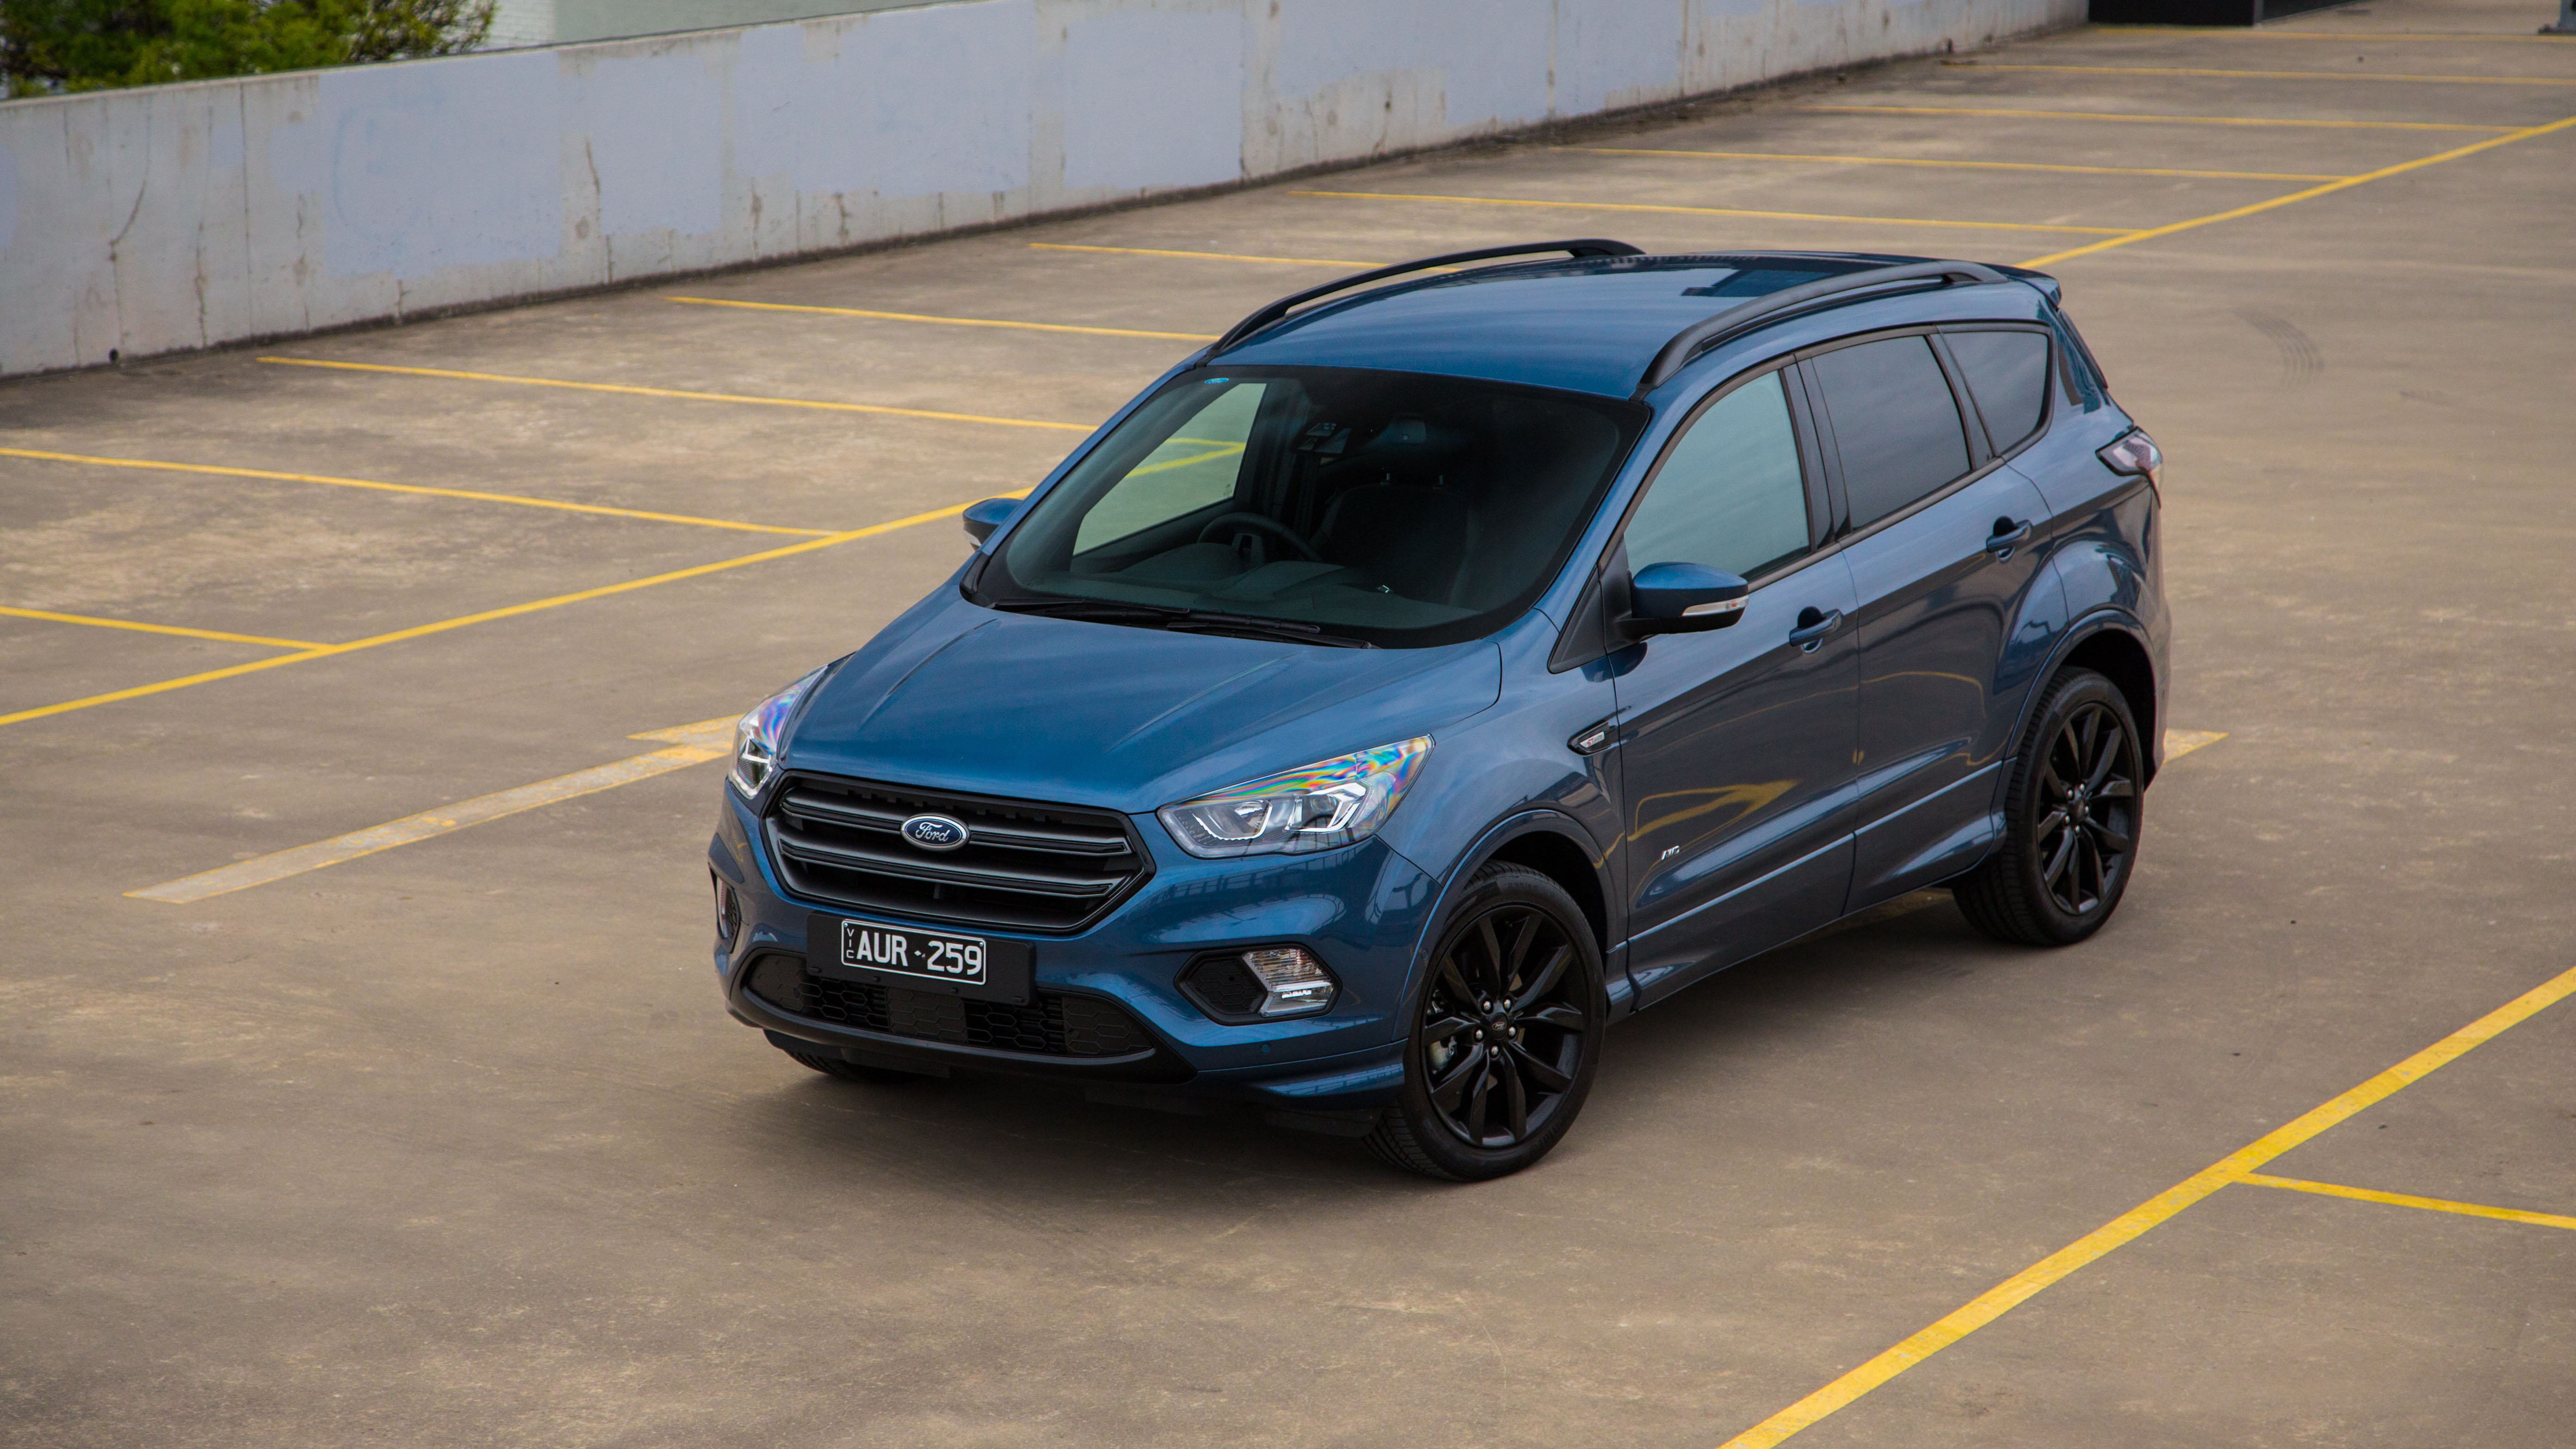 2018 Ford Escape ST-Line long-termer: Interior and